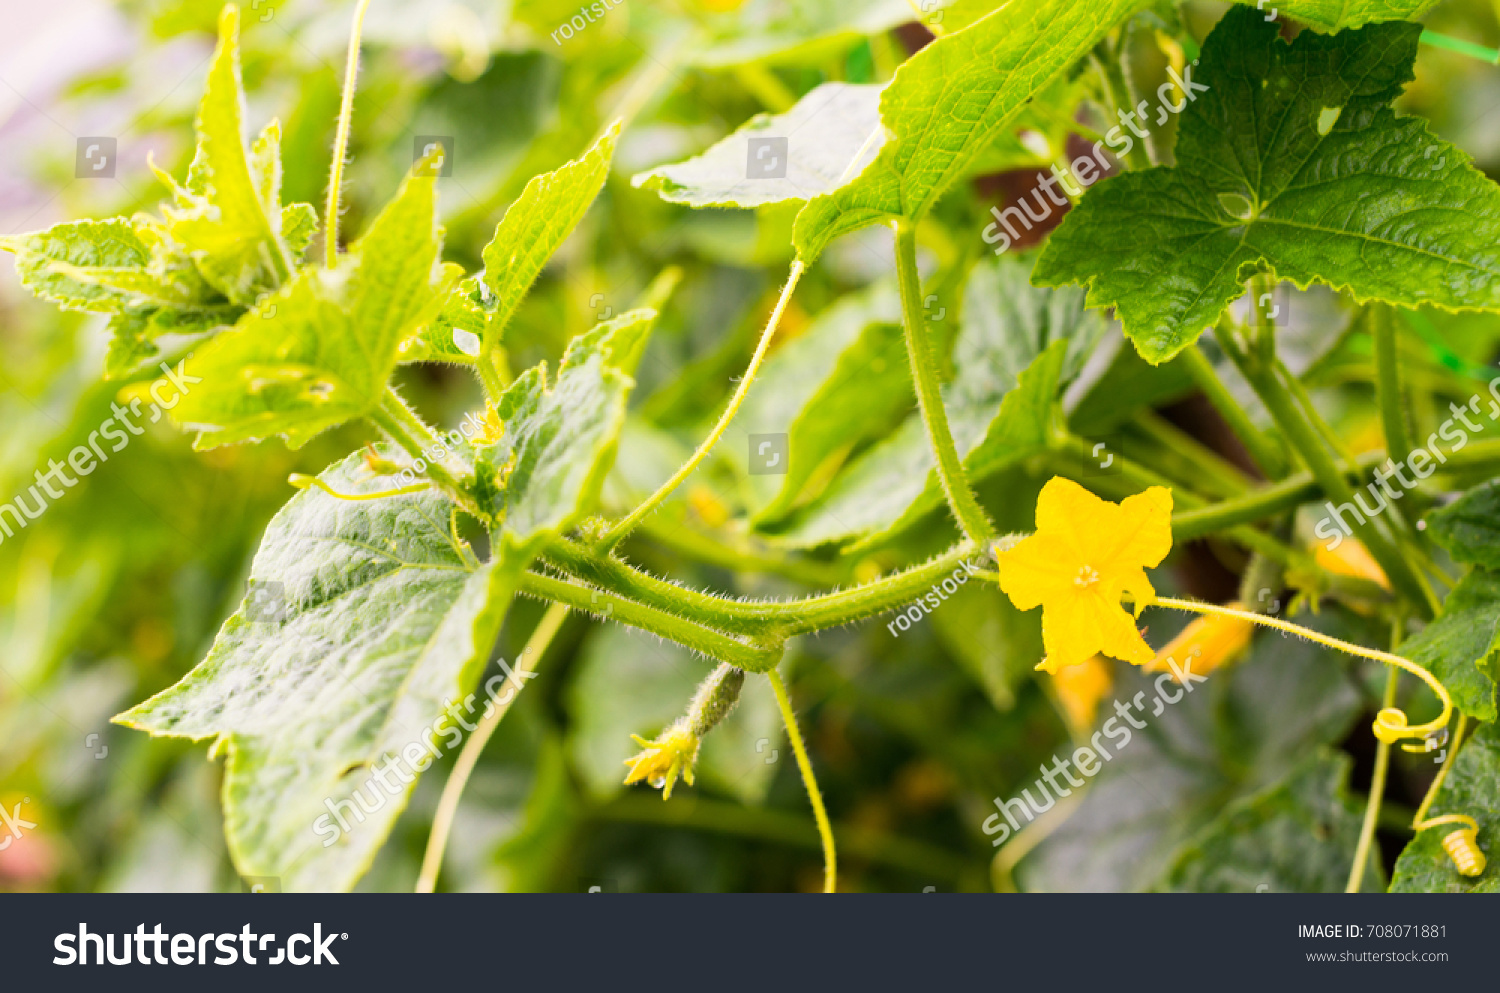 Cucumber Yellow Flowers Creeping Vines Green Stock Photo 100 Legal